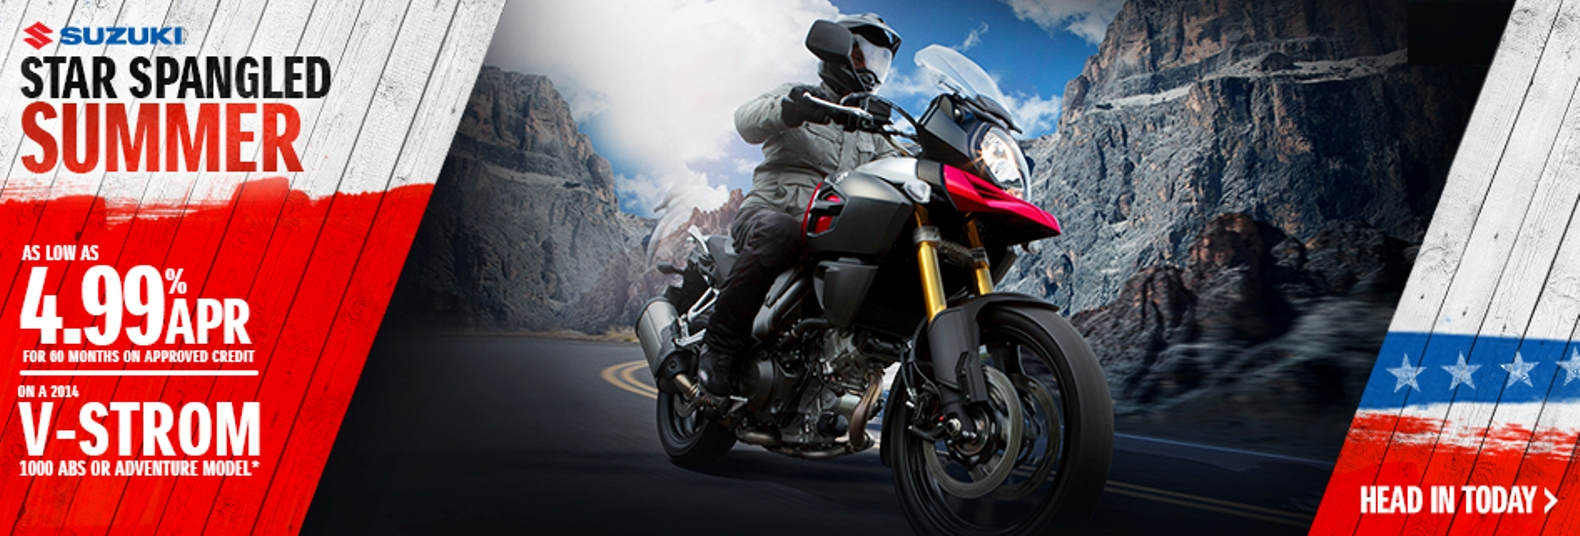 SUZ_Summer Promotion_DealerBanner-1580x536_VSTROM